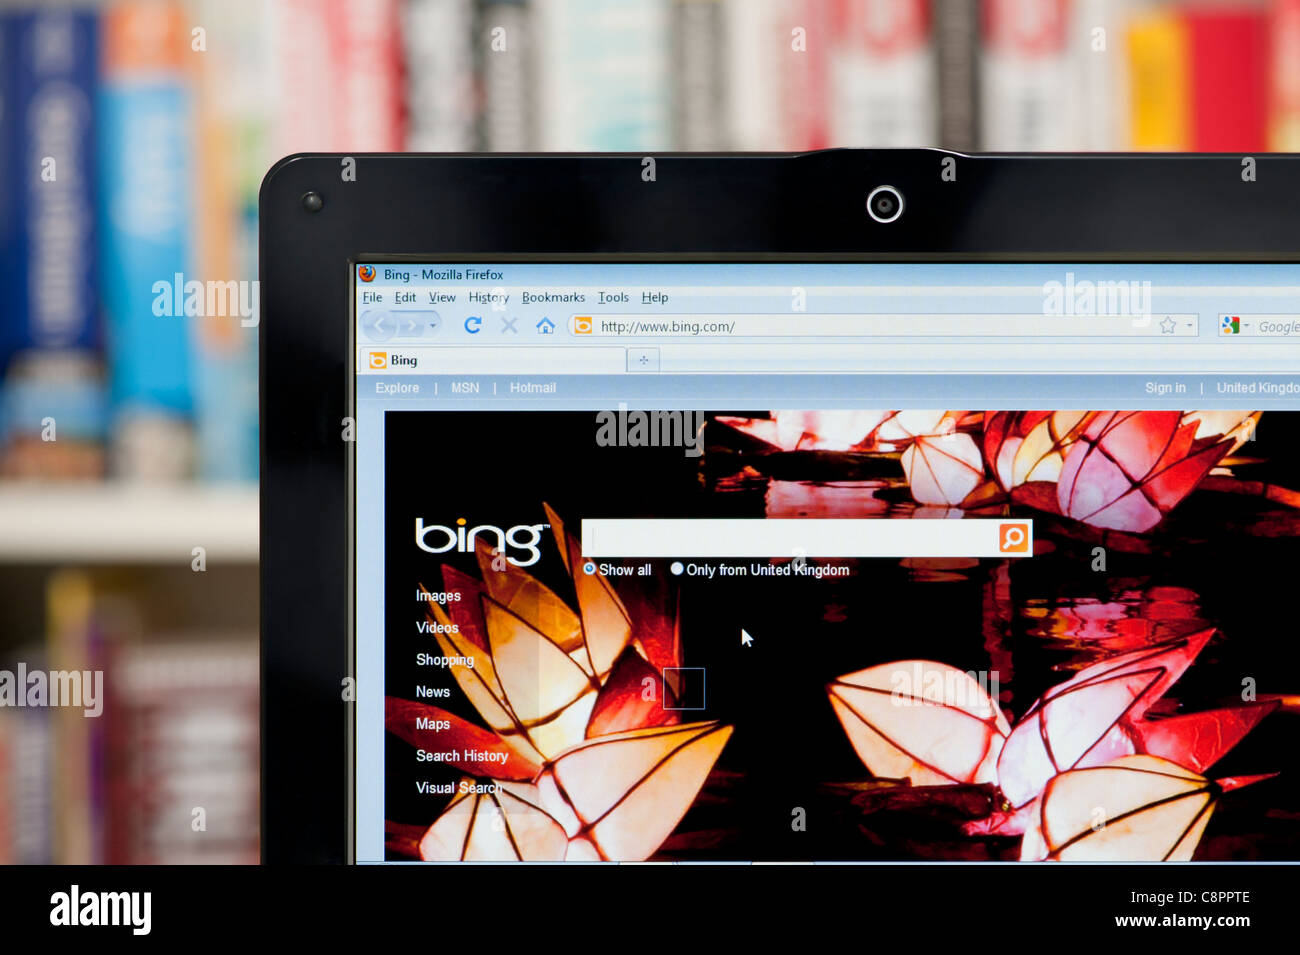 The Bing website shot against a bookcase background (Editorial use only: print, TV, e-book and editorial website). - Stock Image